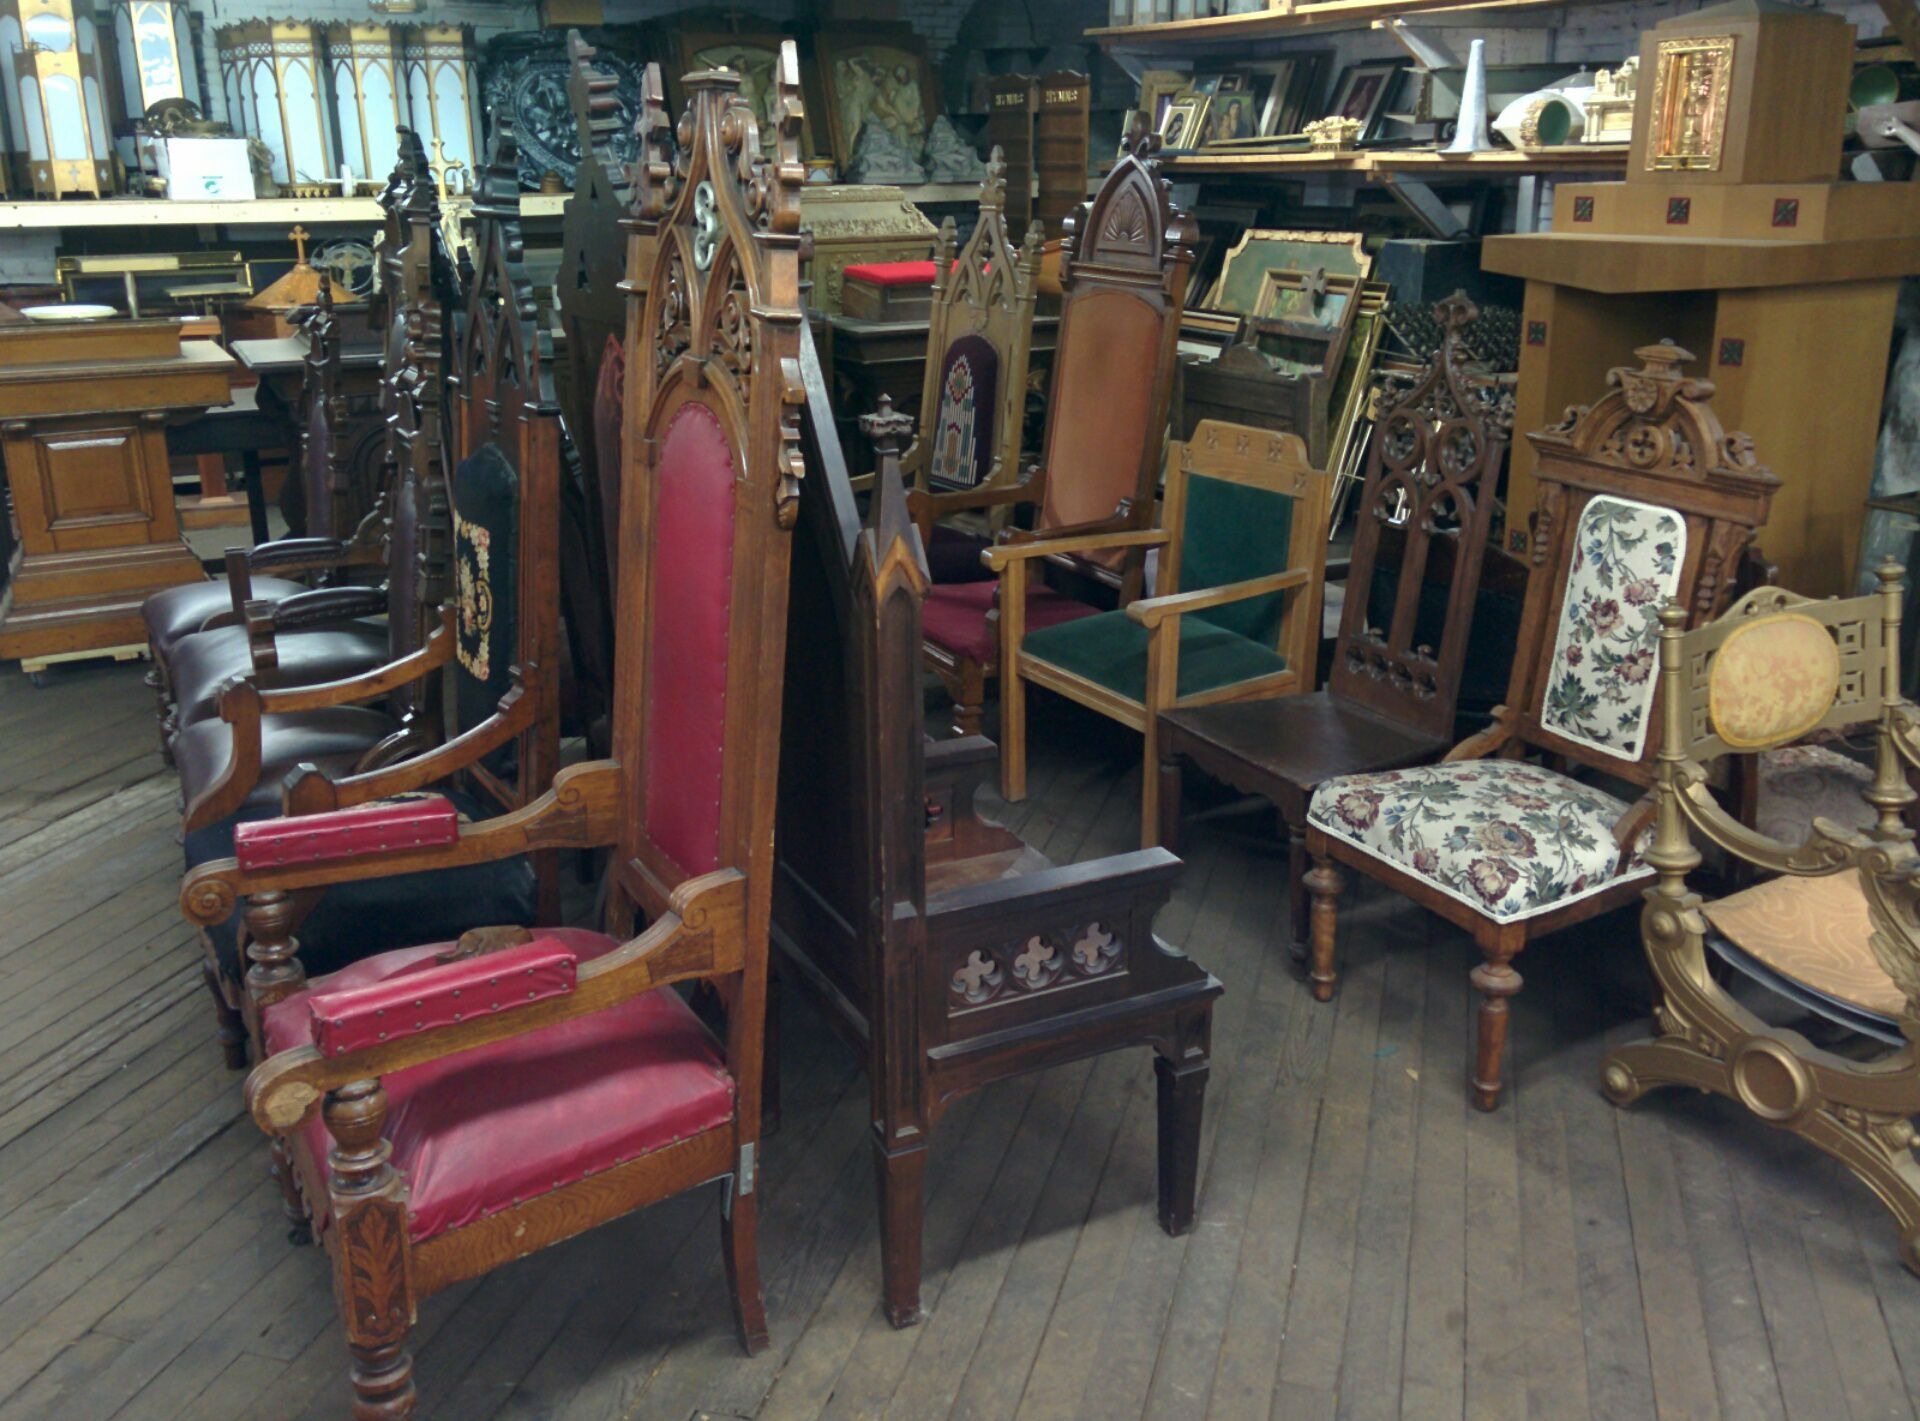 Chairs Sedilia Presider Used Church Items